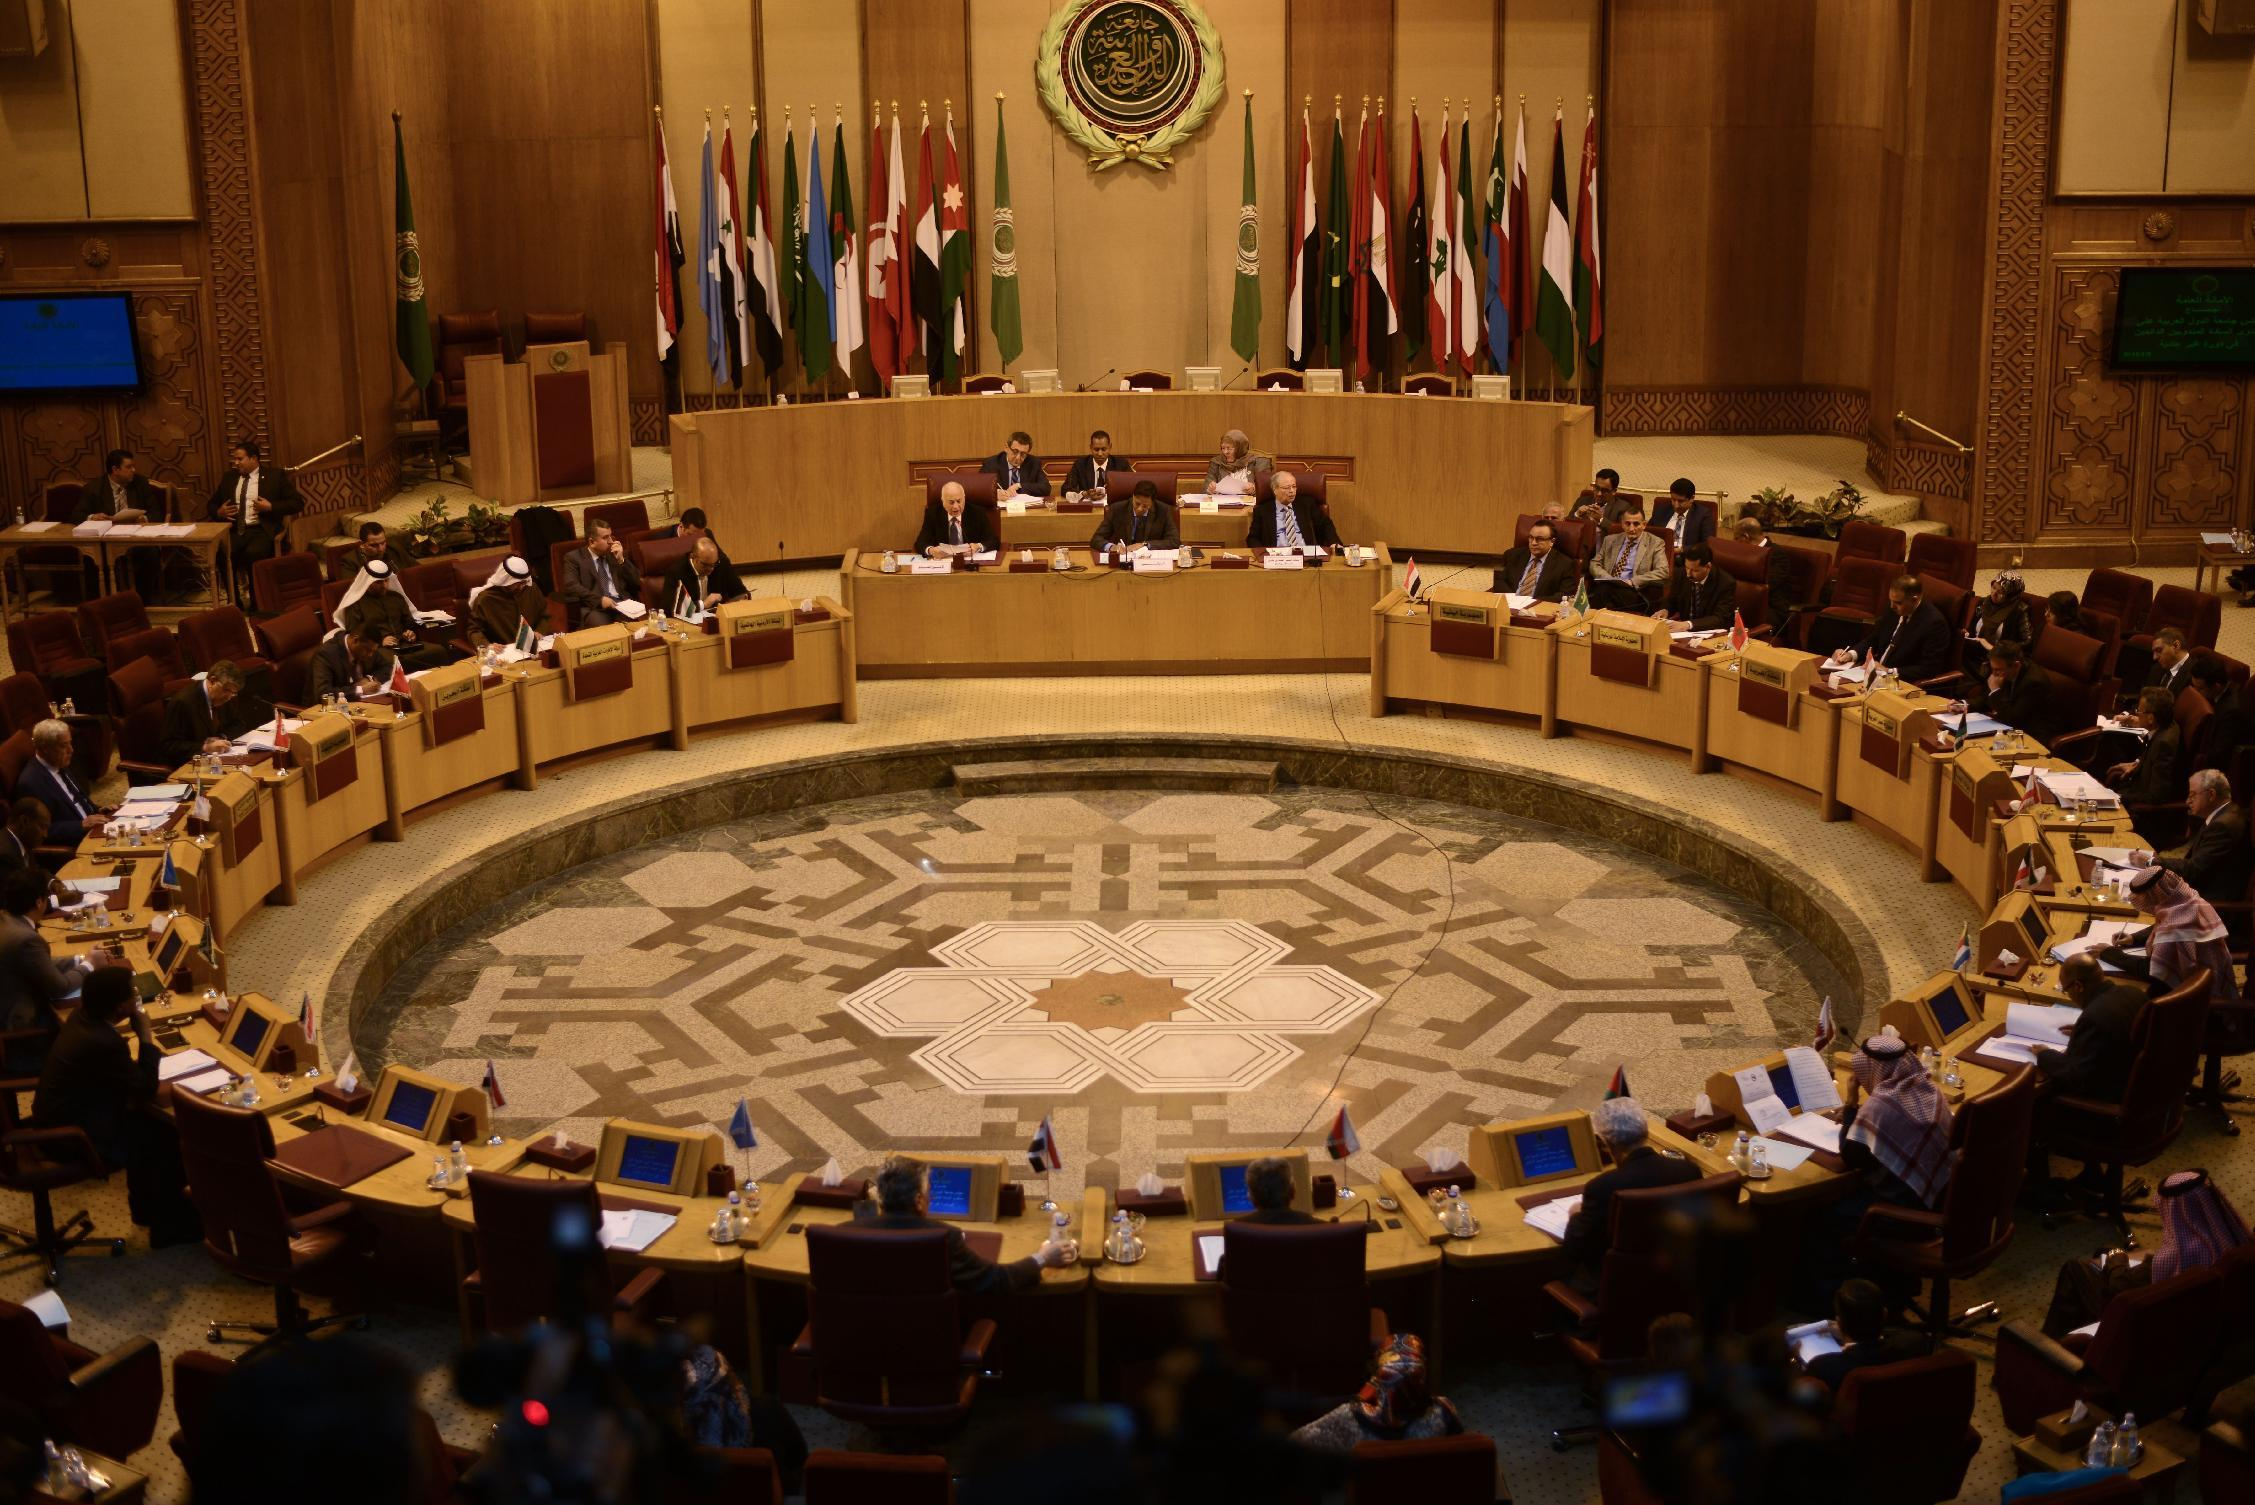 Representatives of the Arab League attend an emergency meeting to discuss the conflict in Libya, at the Arab League headquarters in Cairo on January 5, 2015